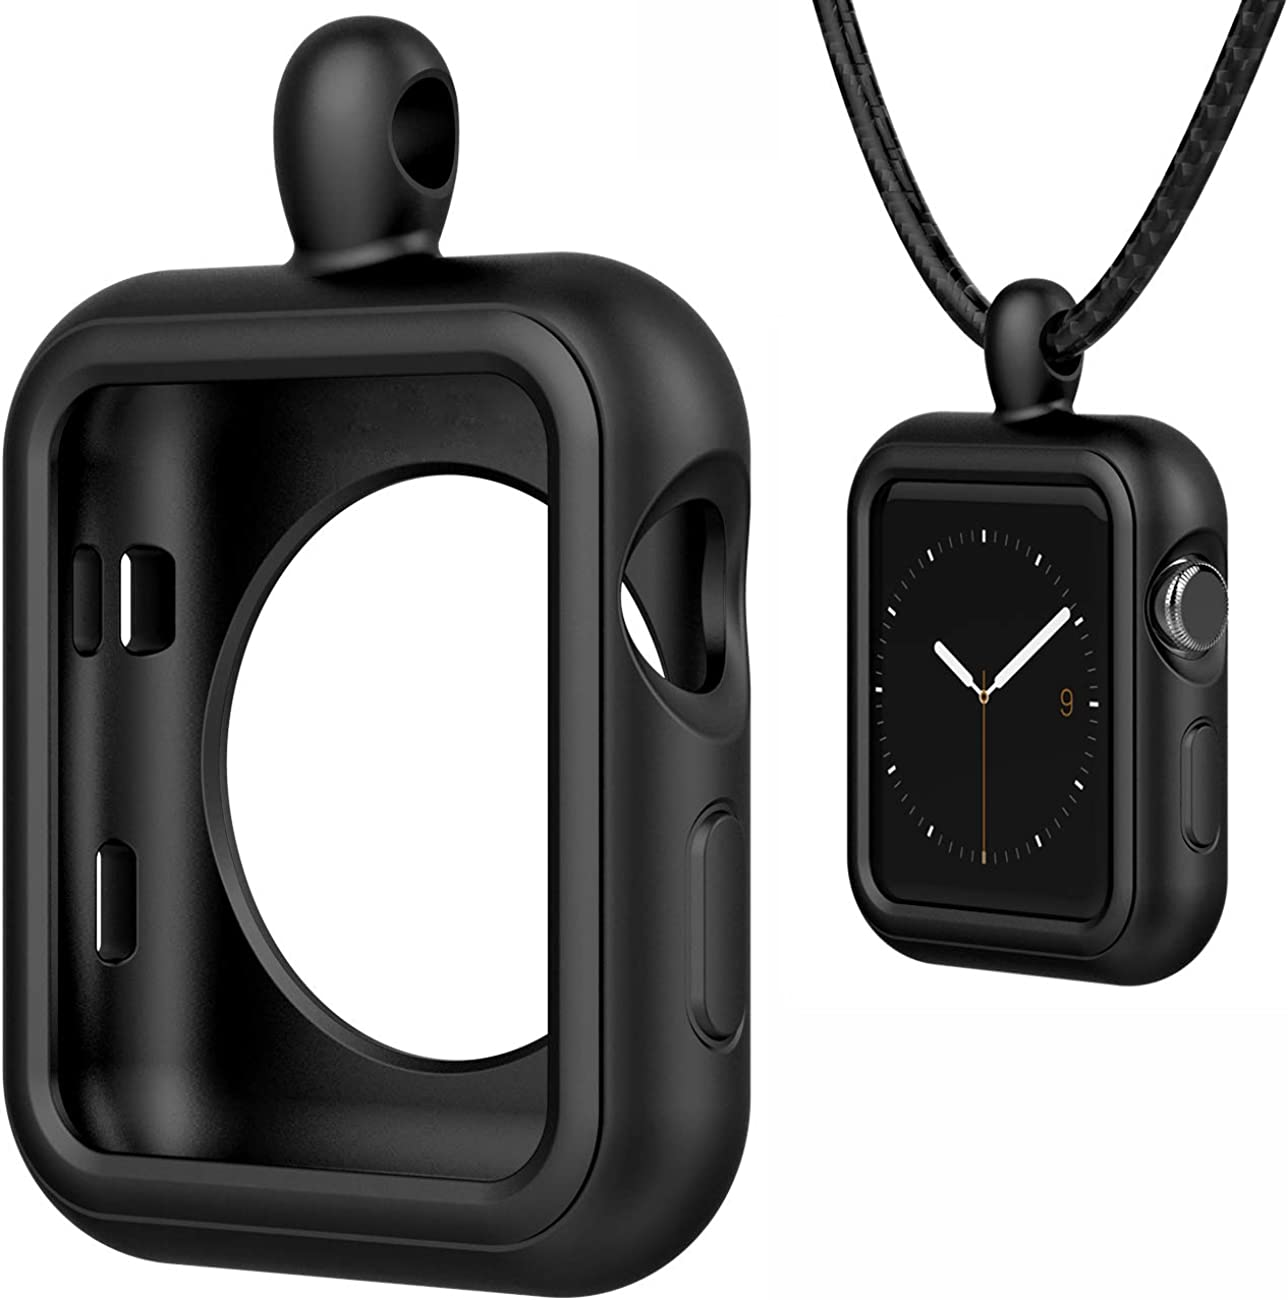 HALLEAST Compatible with for Apple Watch Pendant Necklace, Silicone Case Replacement for iWatch Cover Series 6 5 4 3 2, Black 38mm 40mm 42mm 44mm